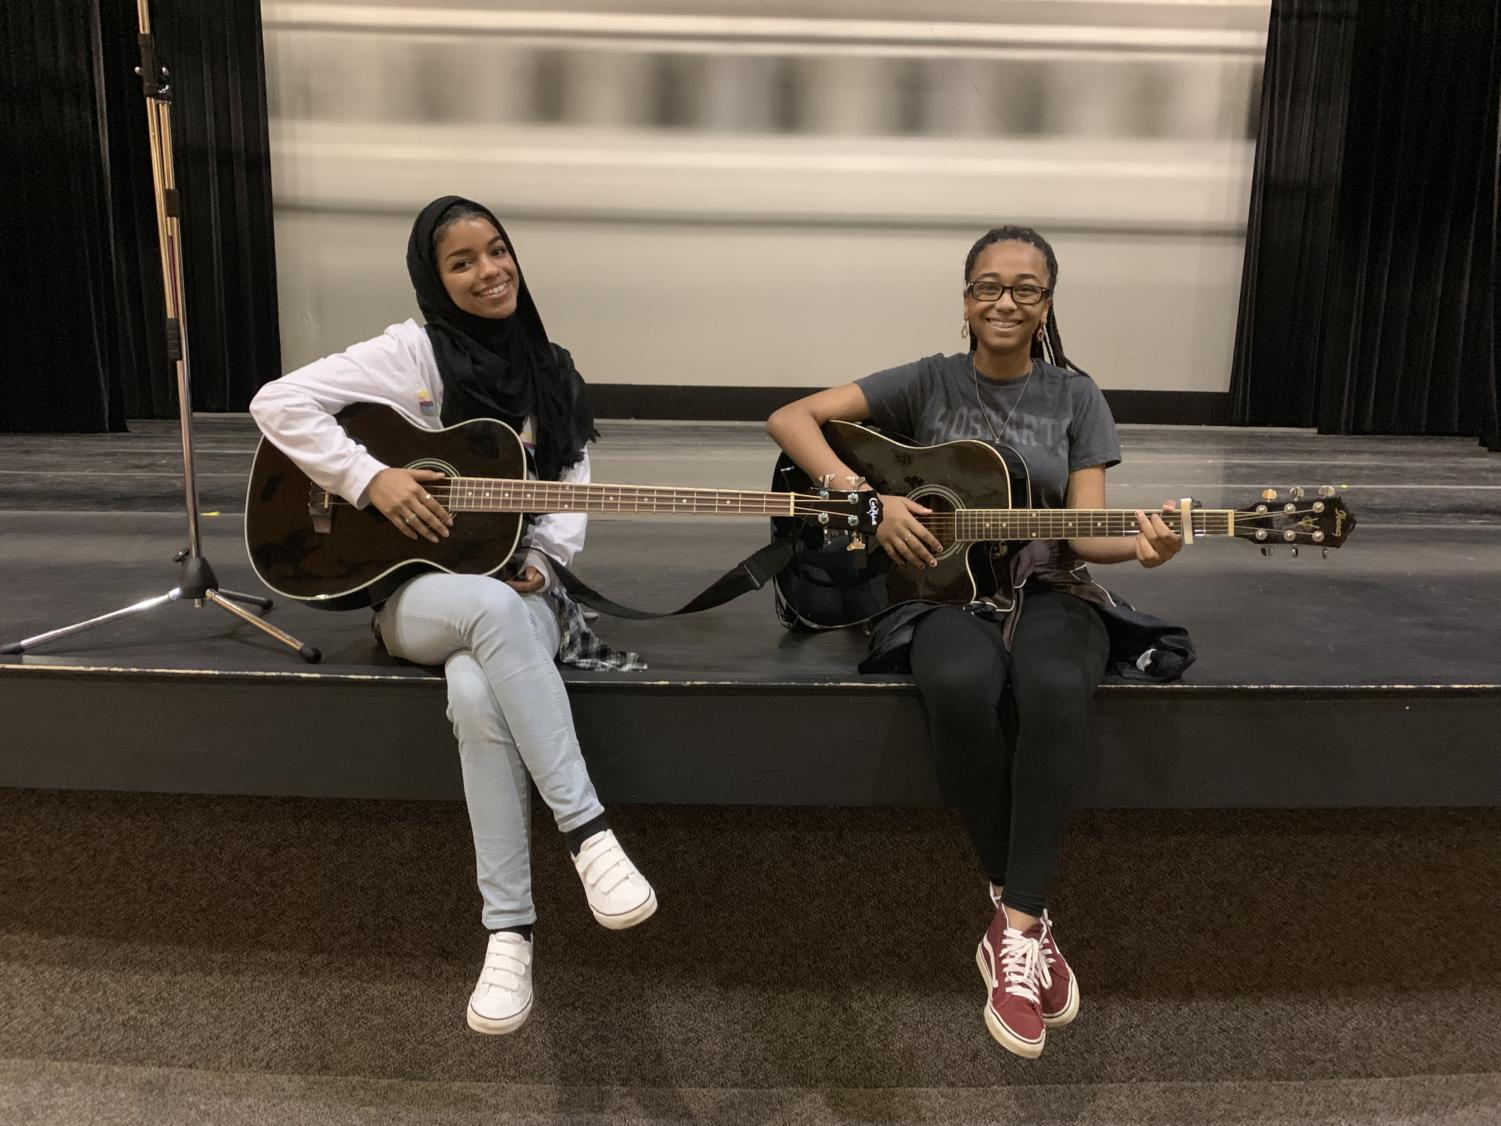 Seniors, Brianna Williams (right) and Hubs Muhammad (left) practice before the senior talent show.